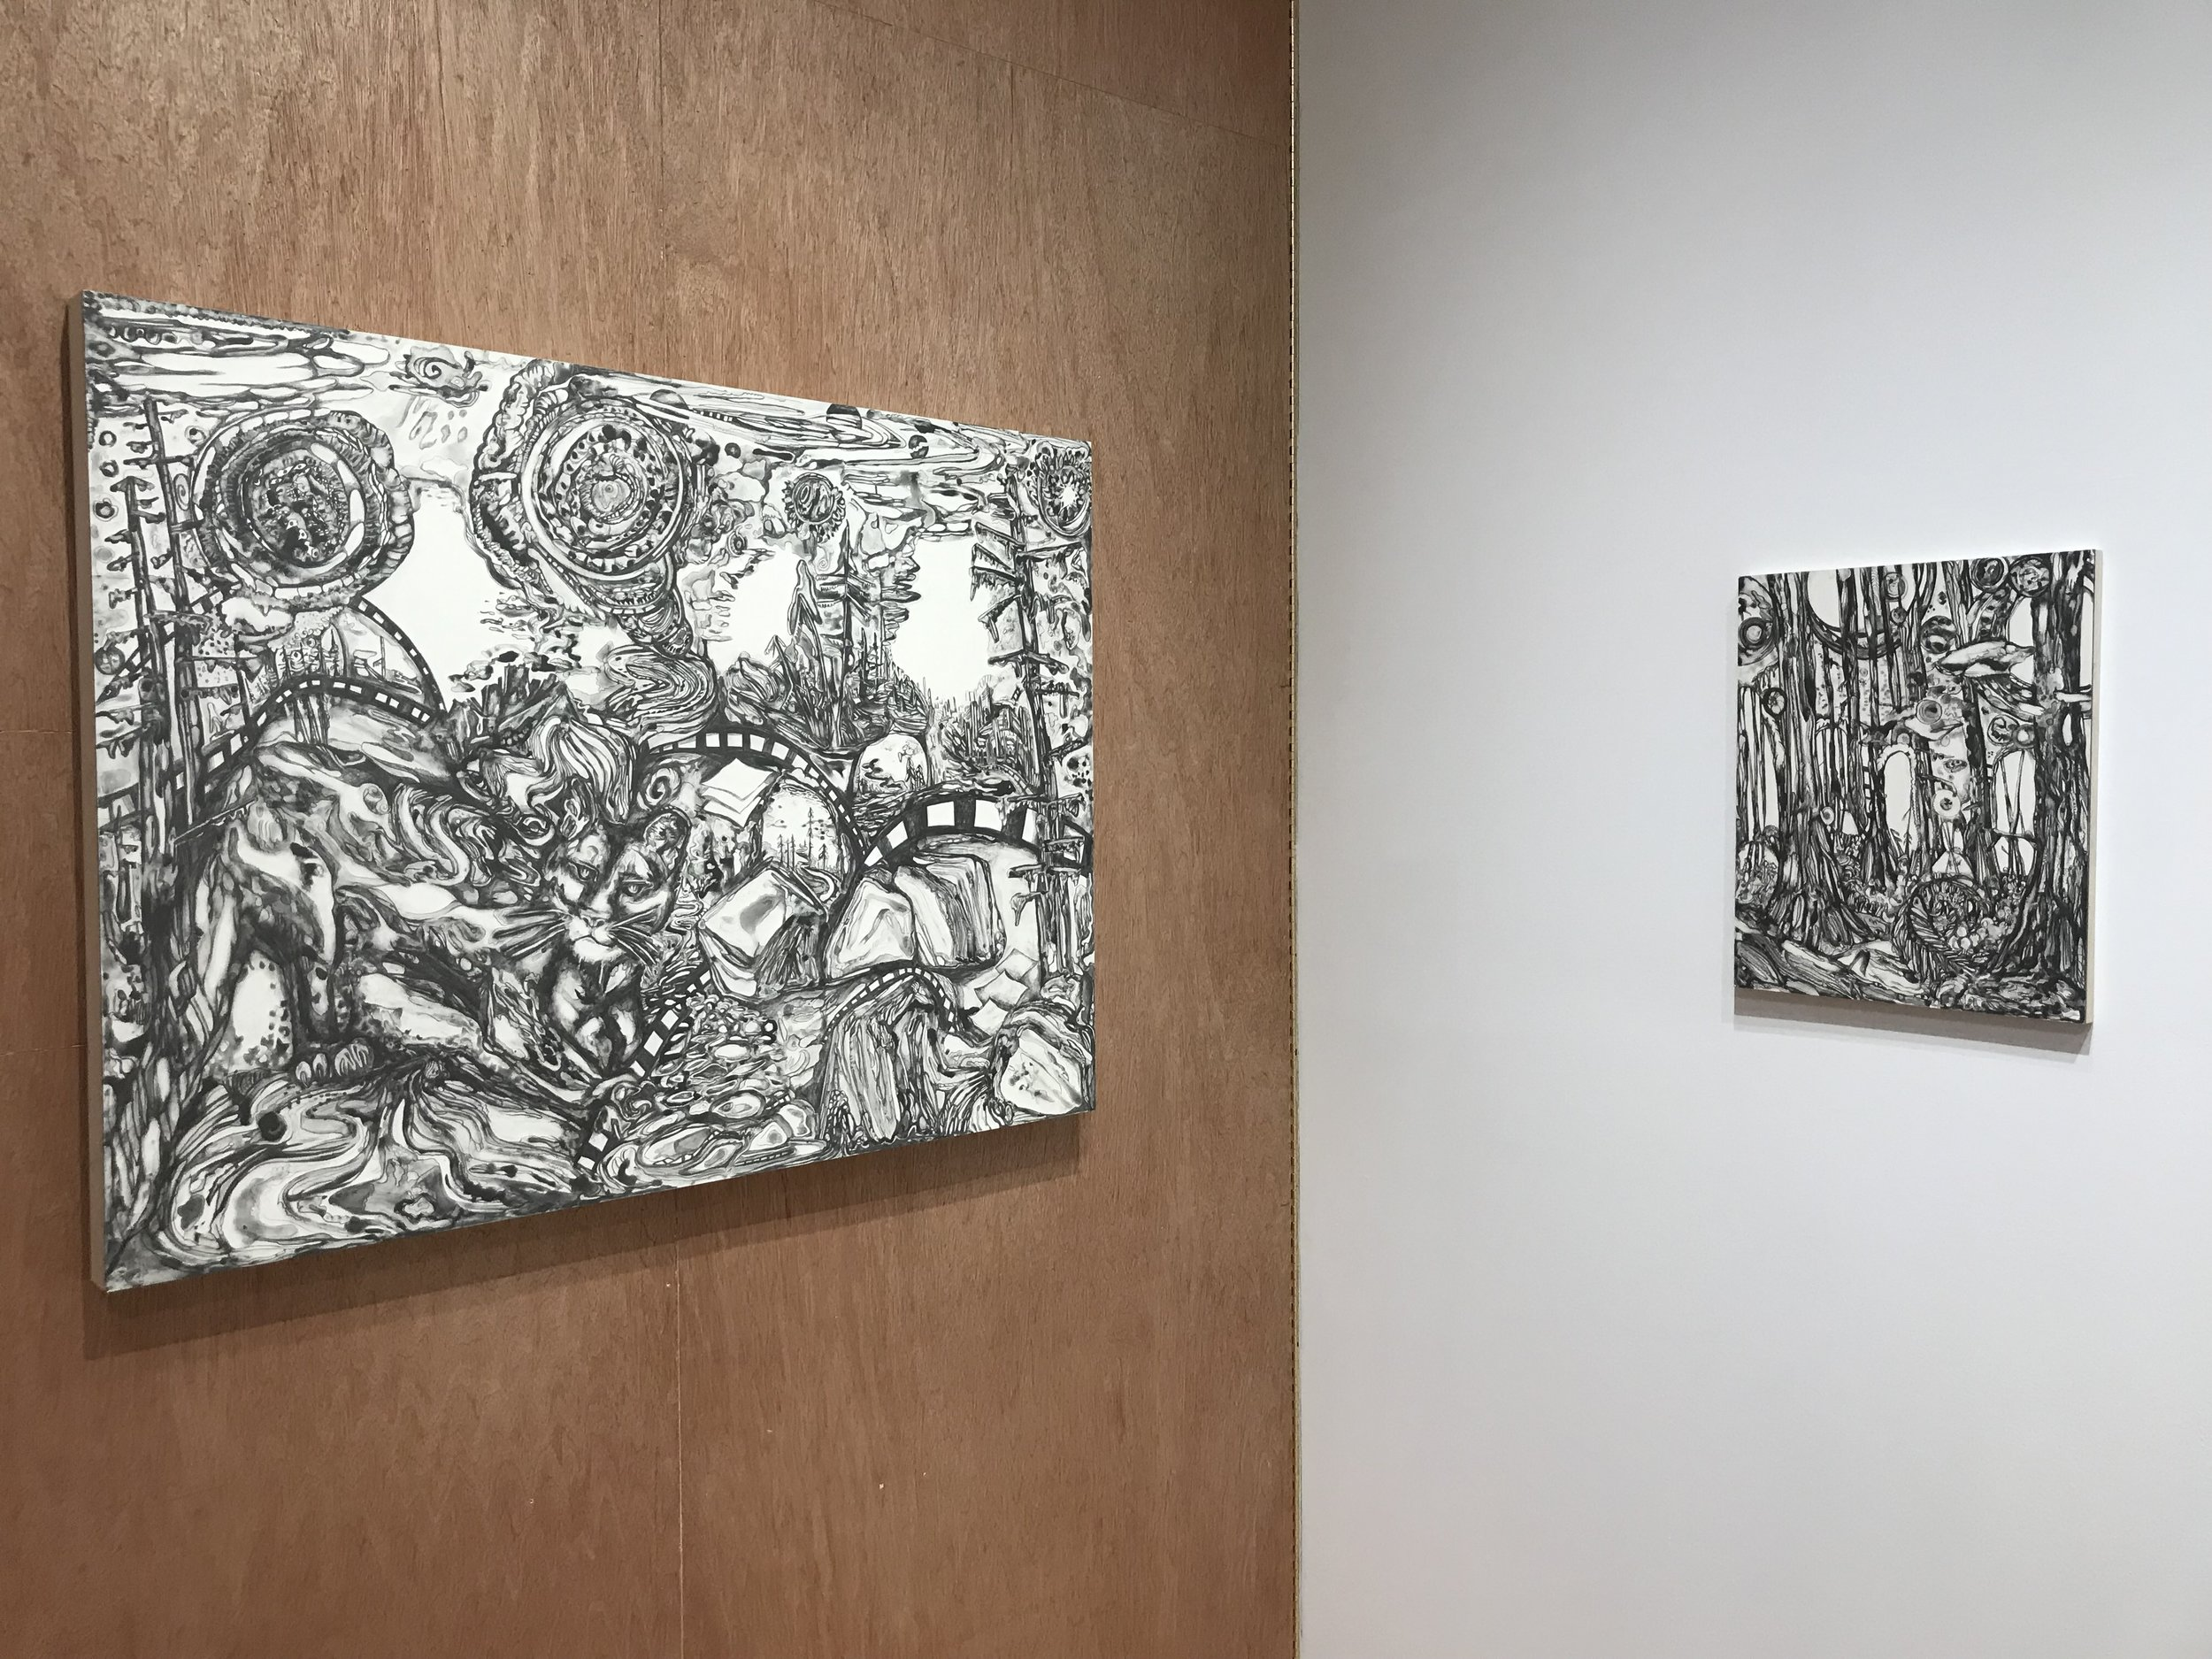 """Installation view of """"Yuba River Mountain Lion,"""" 2019 by Maria Calandra and """"Henry Cowell State Park, CA,"""" 2019 by Maria Calandra"""